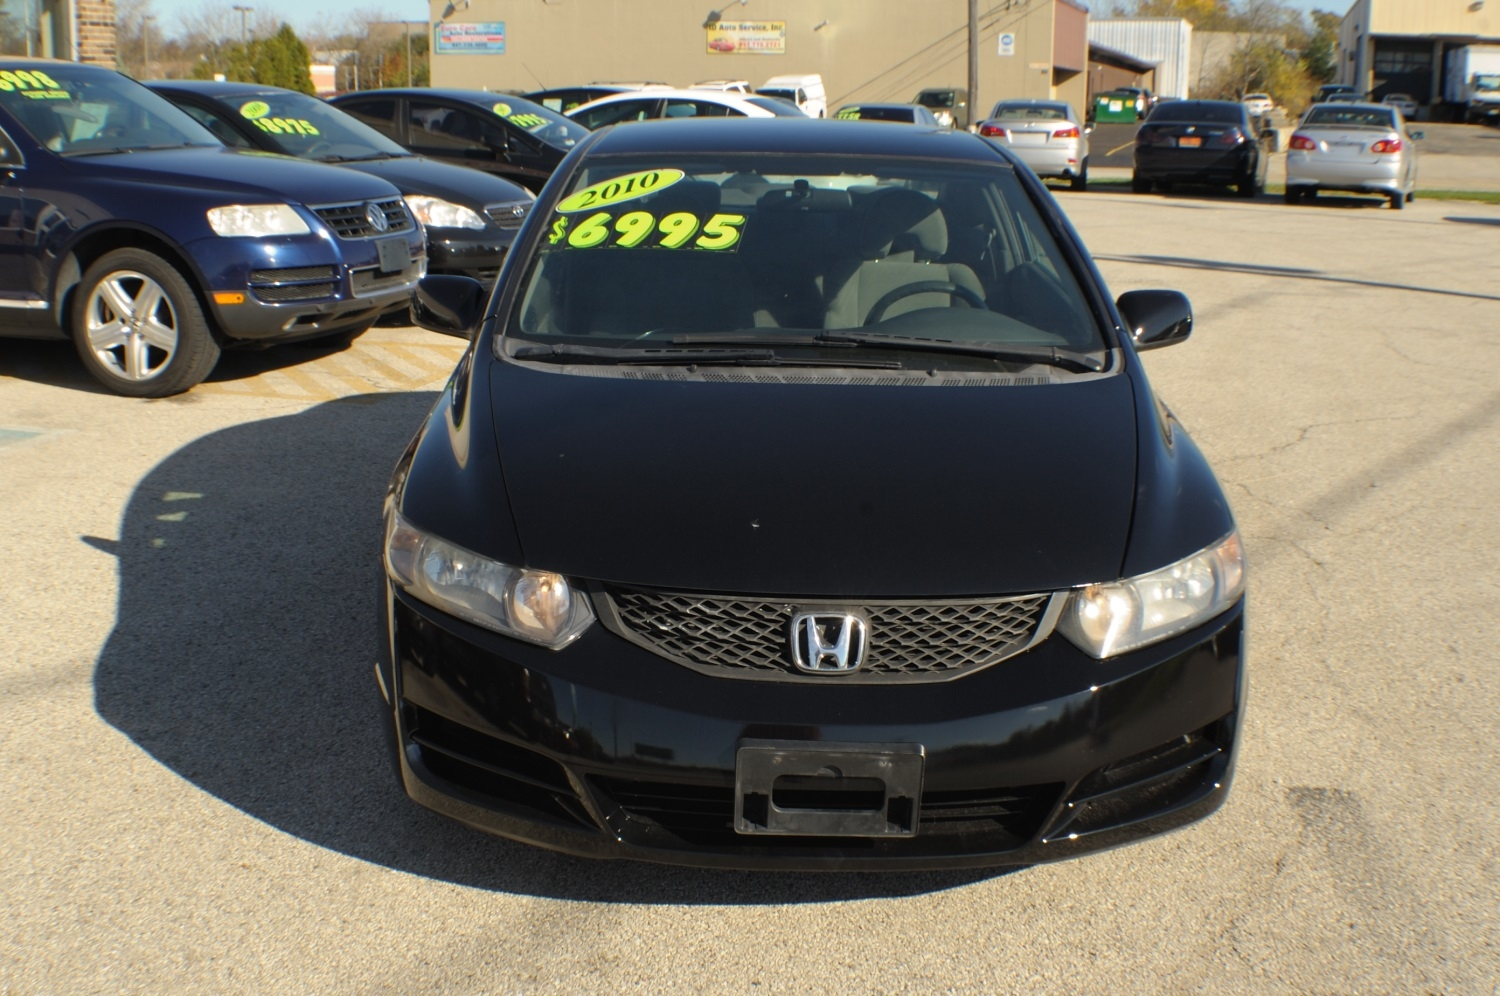 2010 Honda Civic Black Coupe Used Car Sale Gurnee Kenosha Mchenry Chicago Illinois